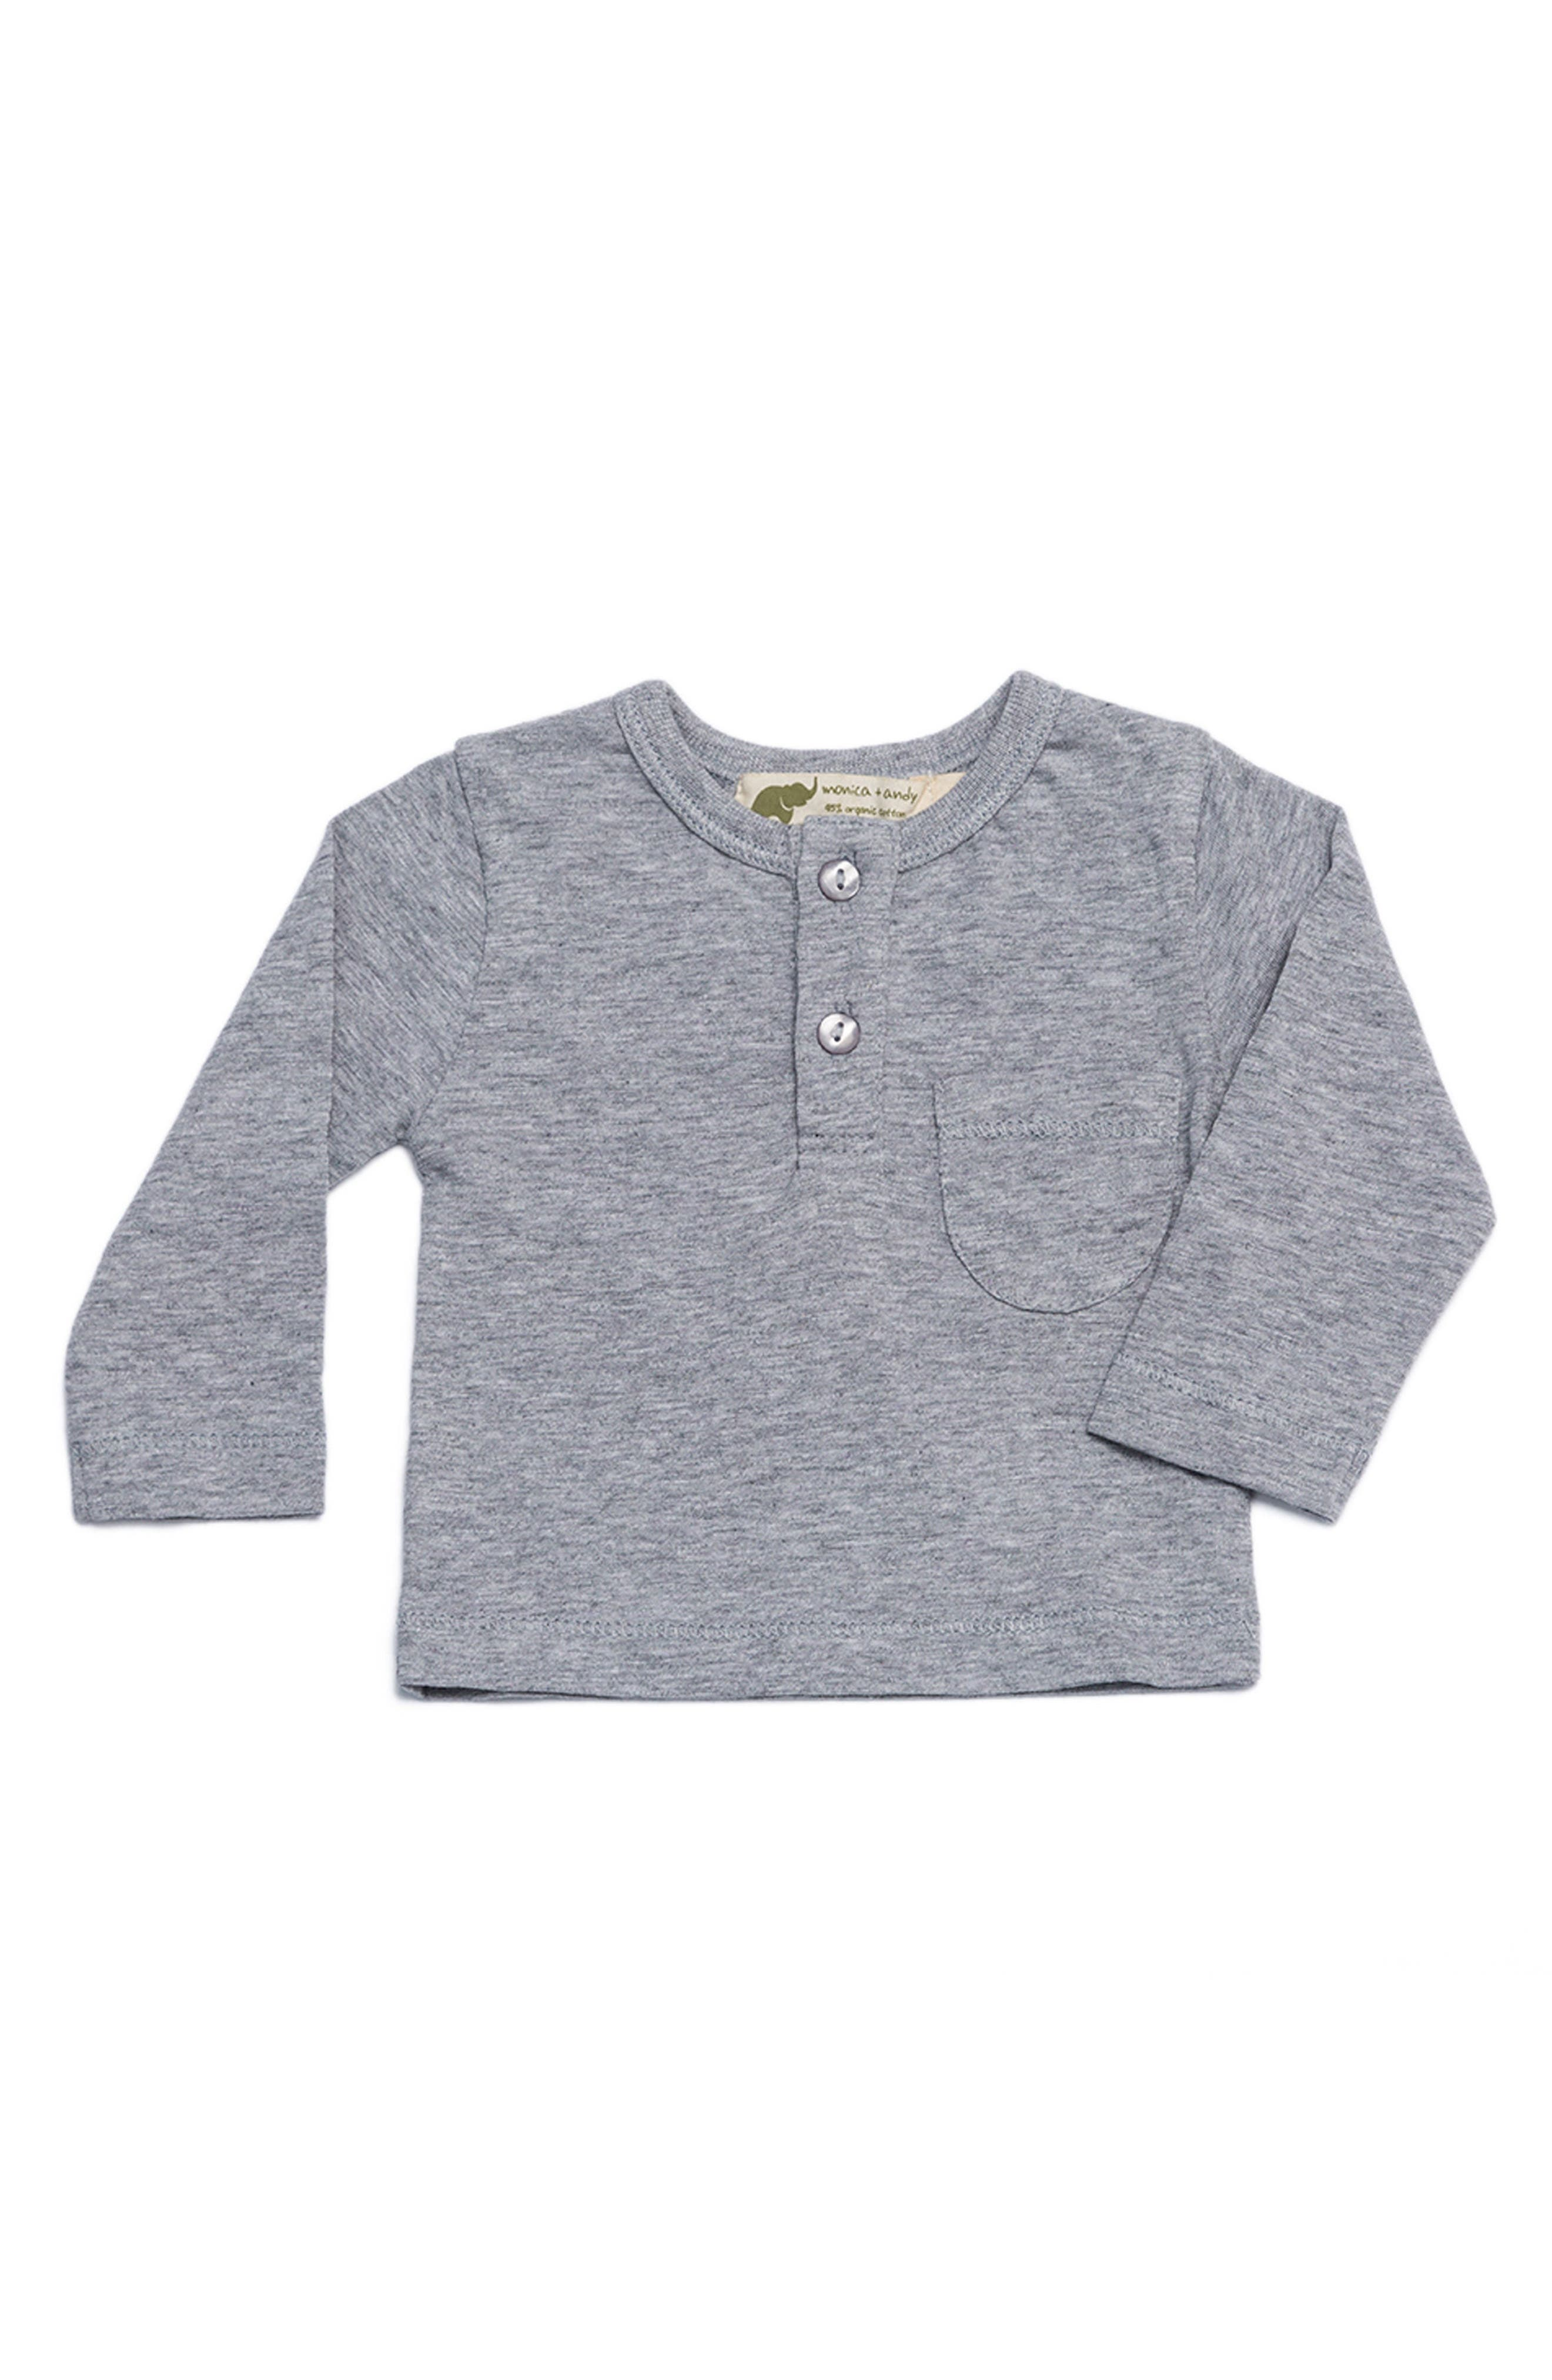 Alternate Image 1 Selected - Monica + Andy Organic Cotton Henley T-Shirt (Baby)